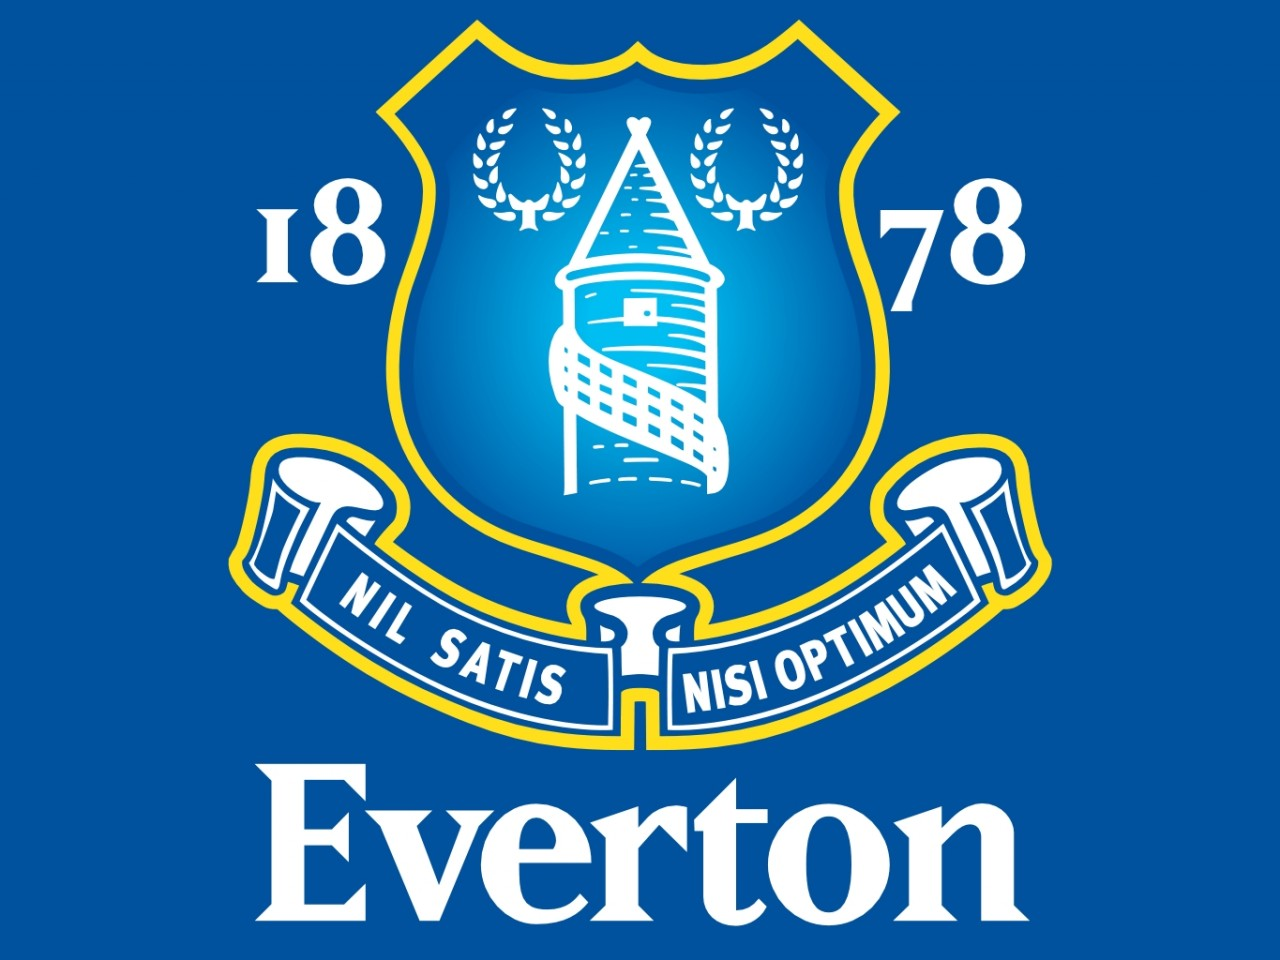 Lot 30 - VIP football tickets for Everton Tickets for 2 to watch a game at Goodison Park with Hospitality in